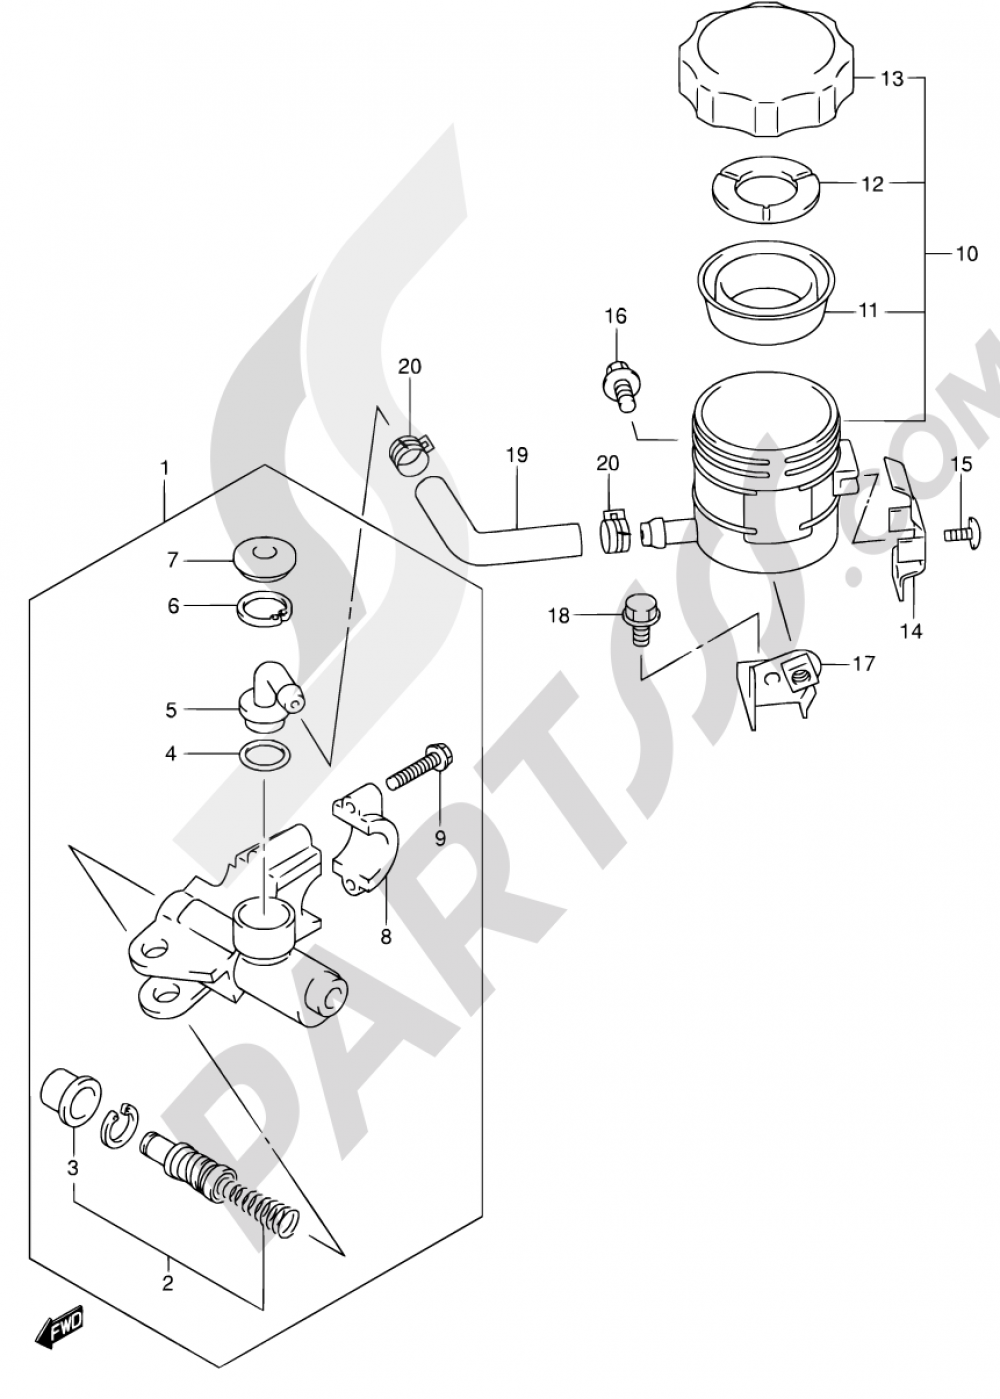 53A - FRONT MASTER CYLINDER (SV650SX/SUX/SY/SUY/SK1/SK2/SUK2) Suzuki SV650S 2001